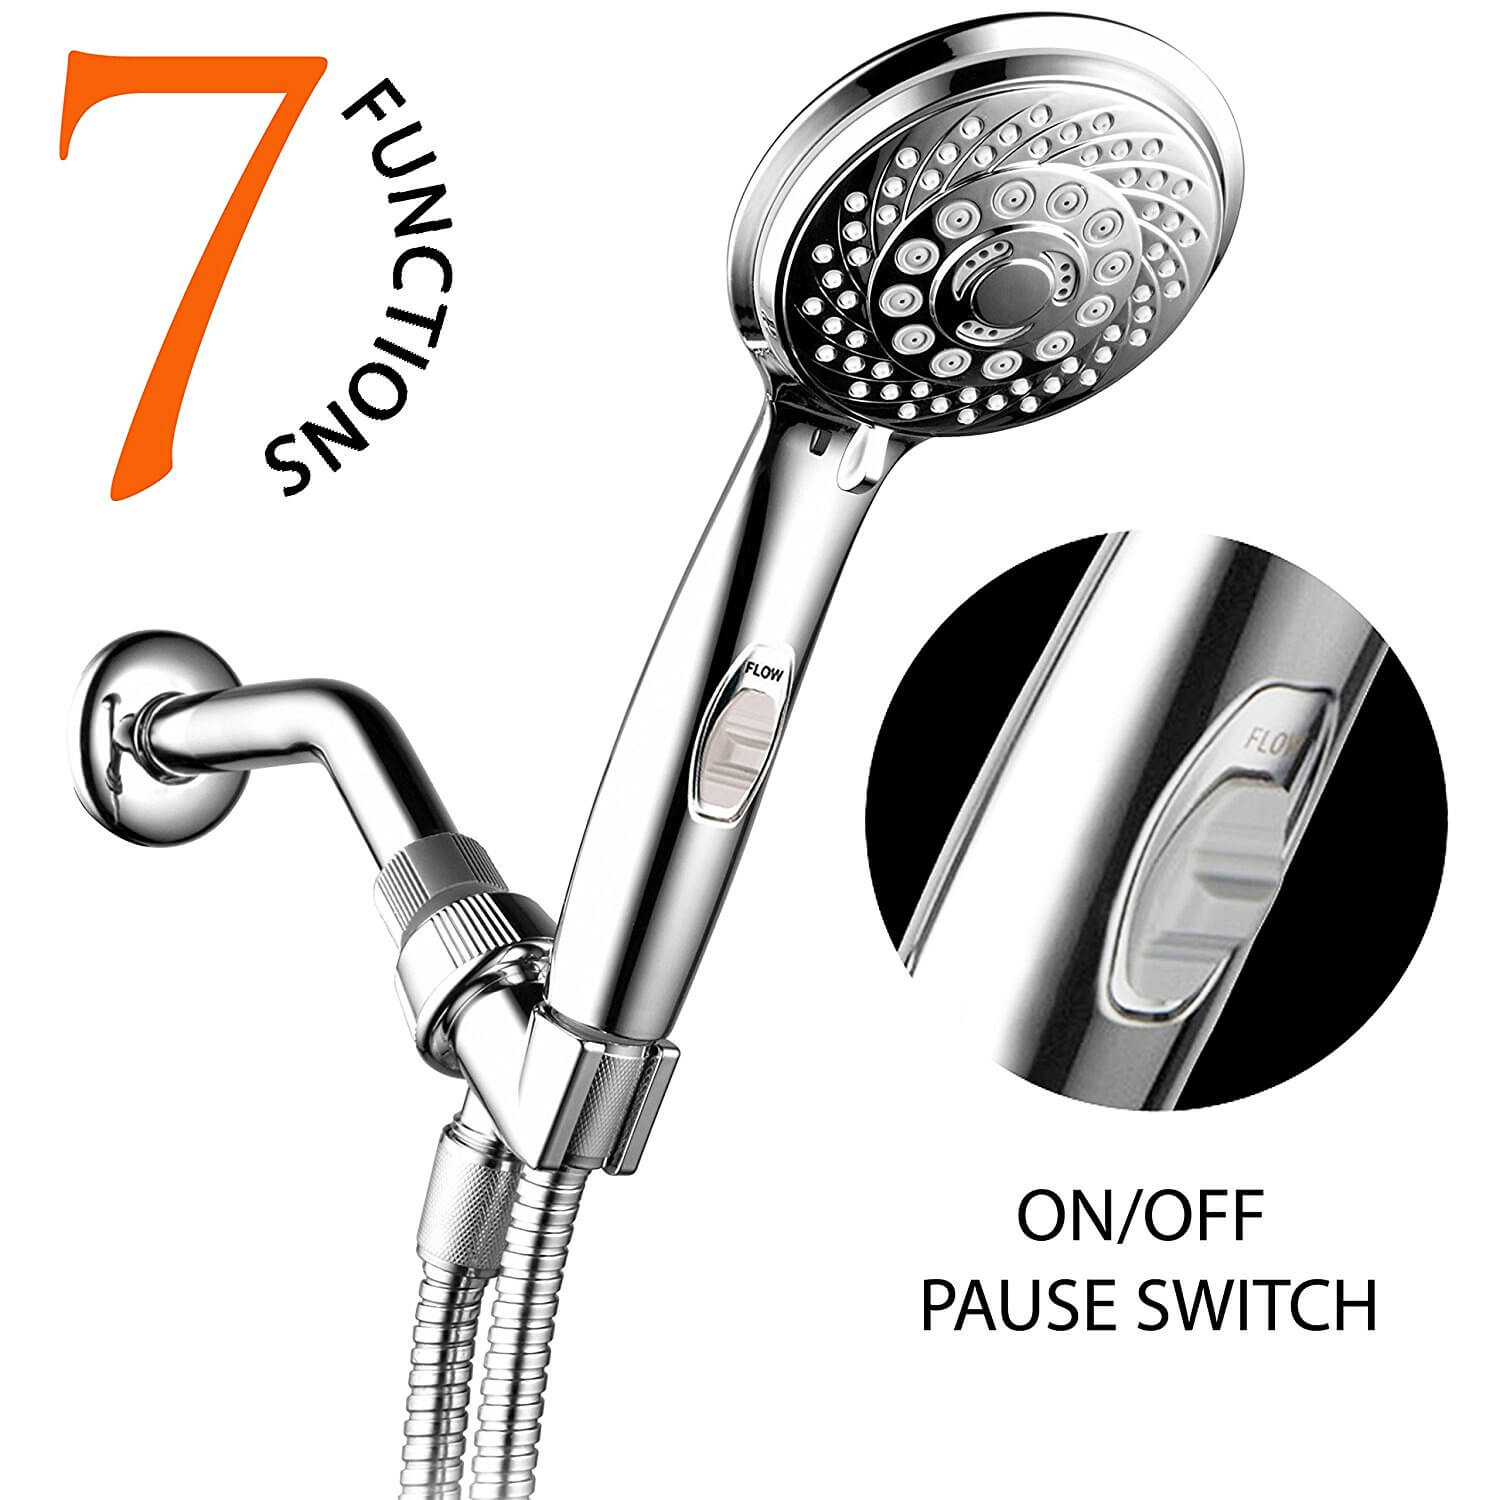 dp filter filtration spray saving held hand function showerheads mode heads water head high nosame handheld ionic shower pressure